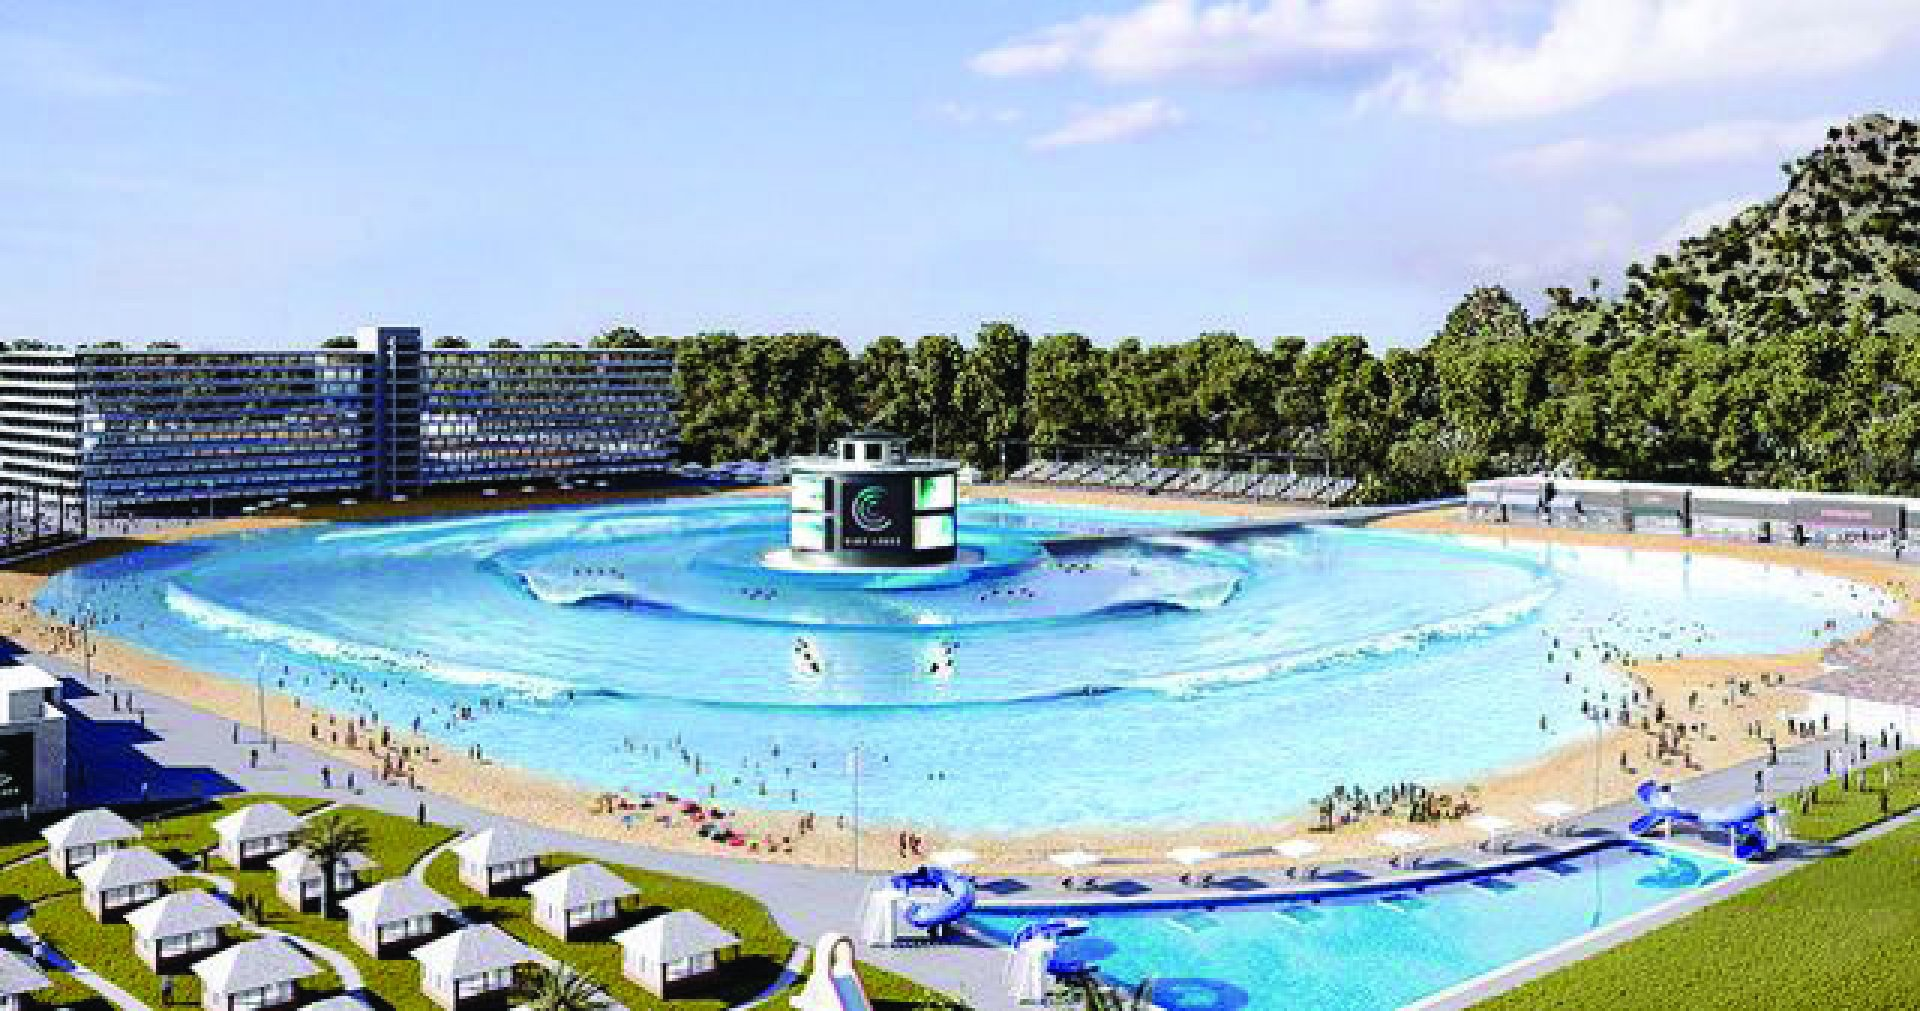 An artist's rendering of Surf Lakes' demonstration facility shows at least eight different waves breaking simultaneously. Image from: surf-lakes.com.au